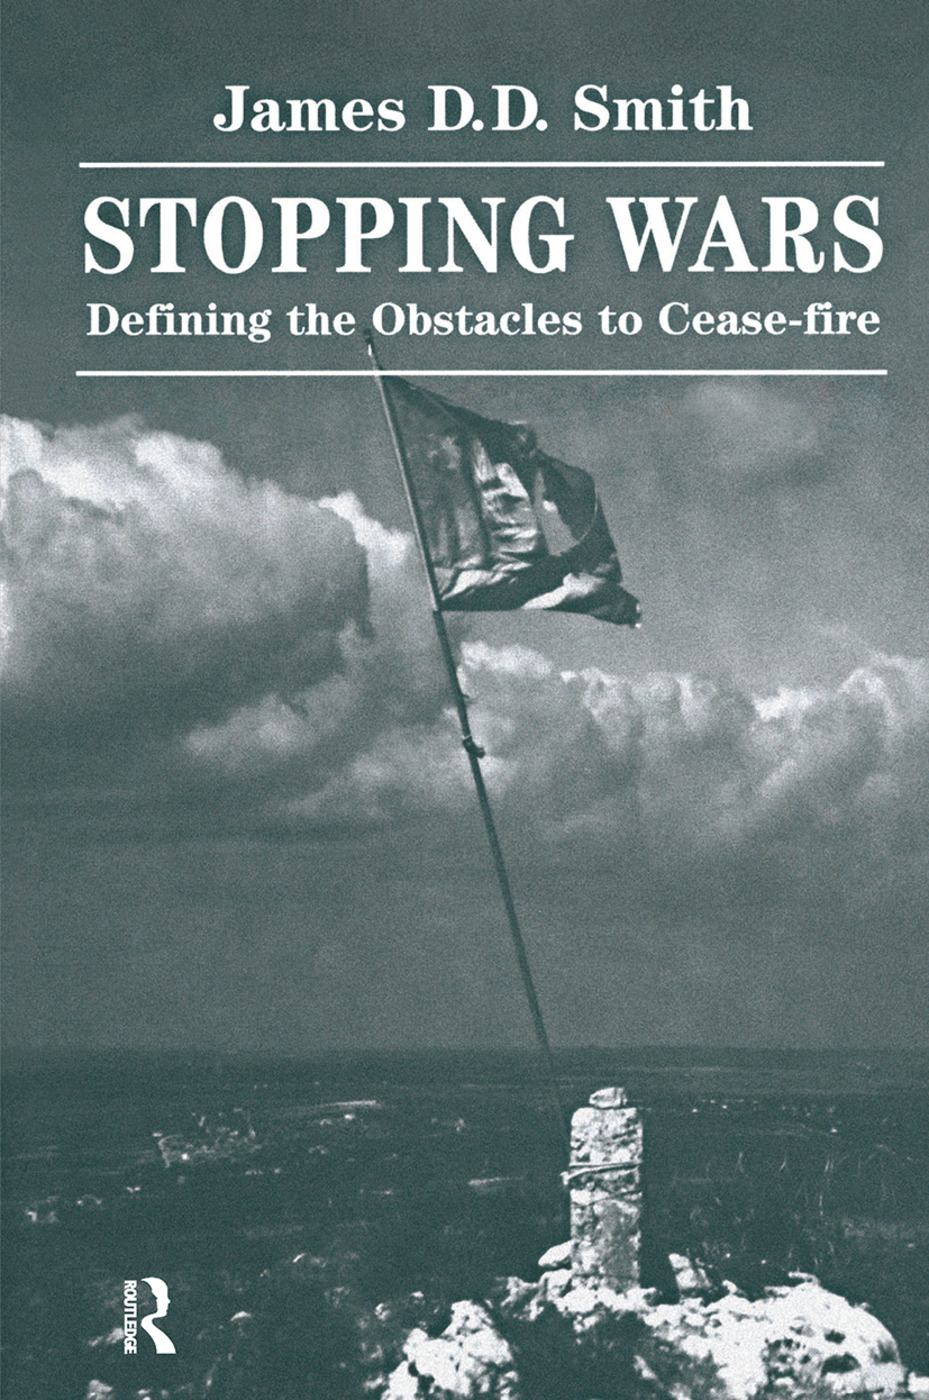 Stopping Wars: Defining The Obstacles To Cease-fire book cover